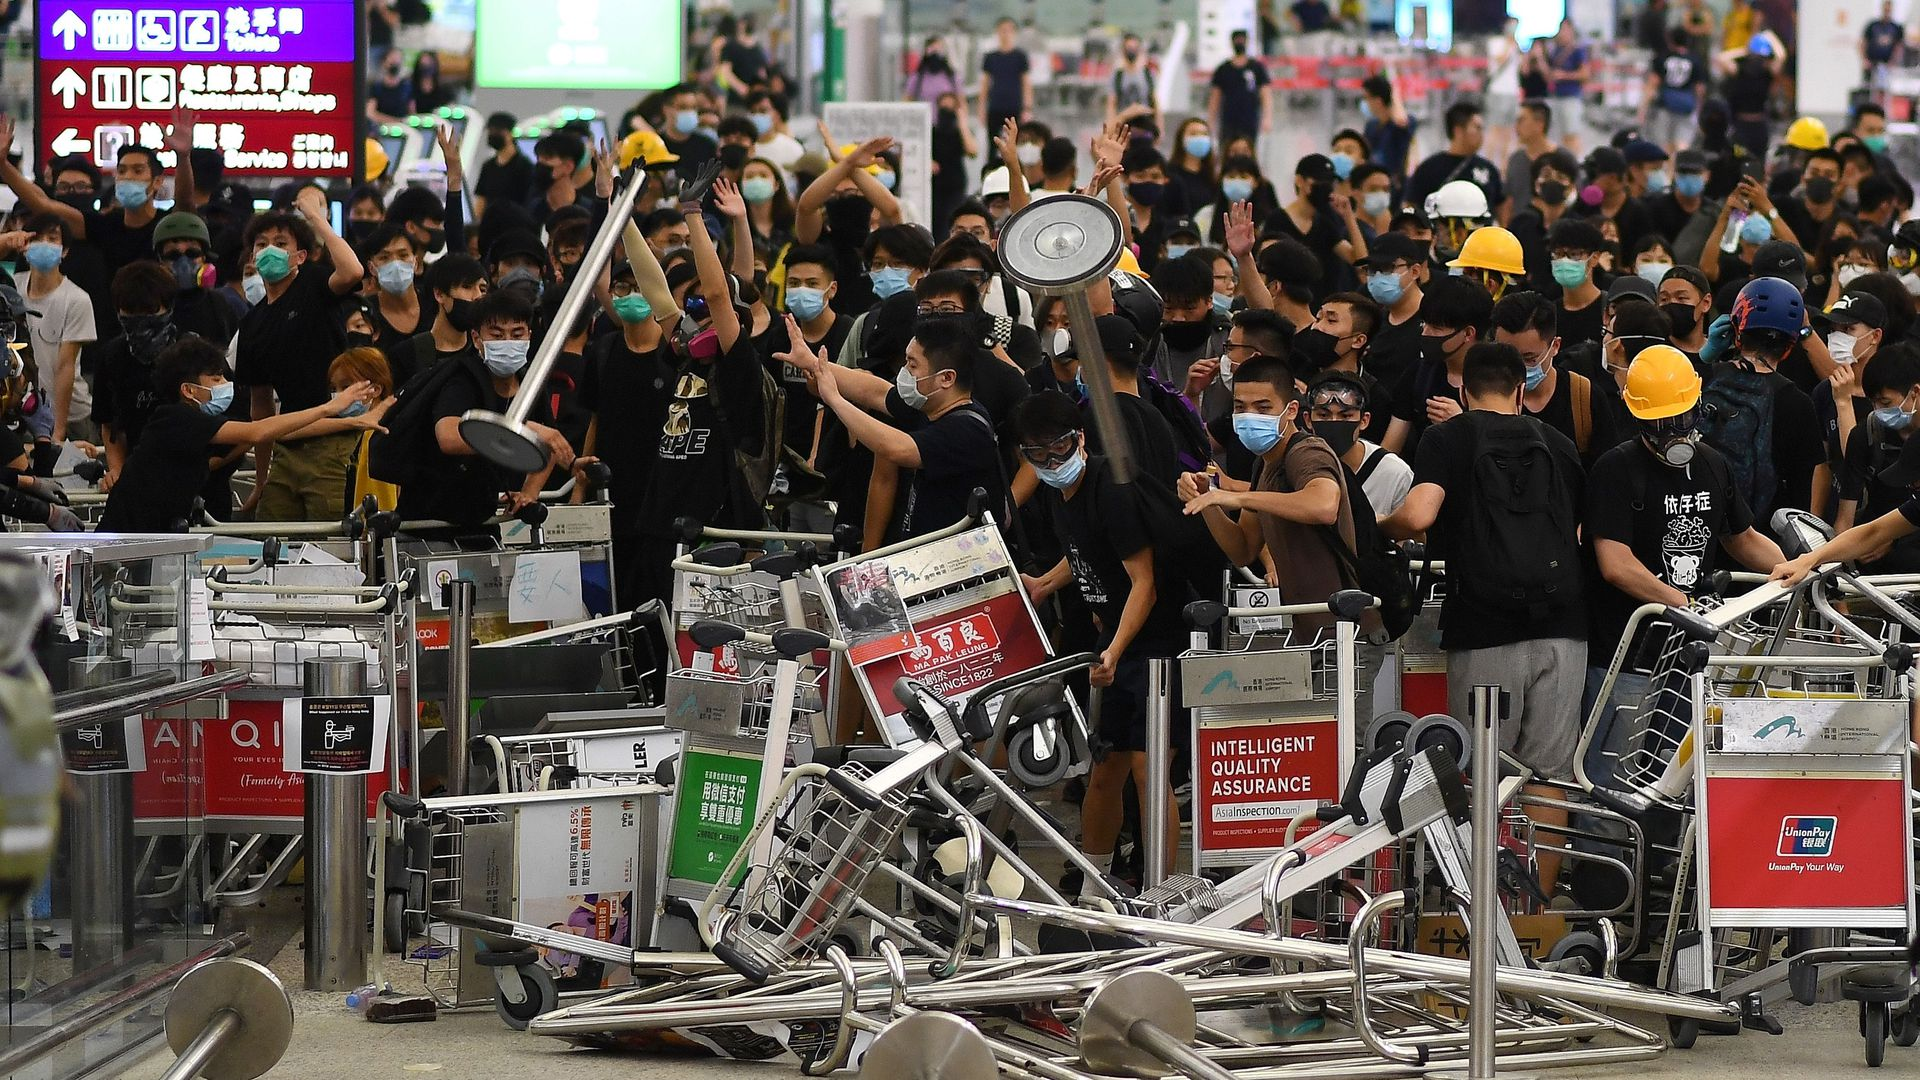 protestors create a barricade of luggage carts at the airport